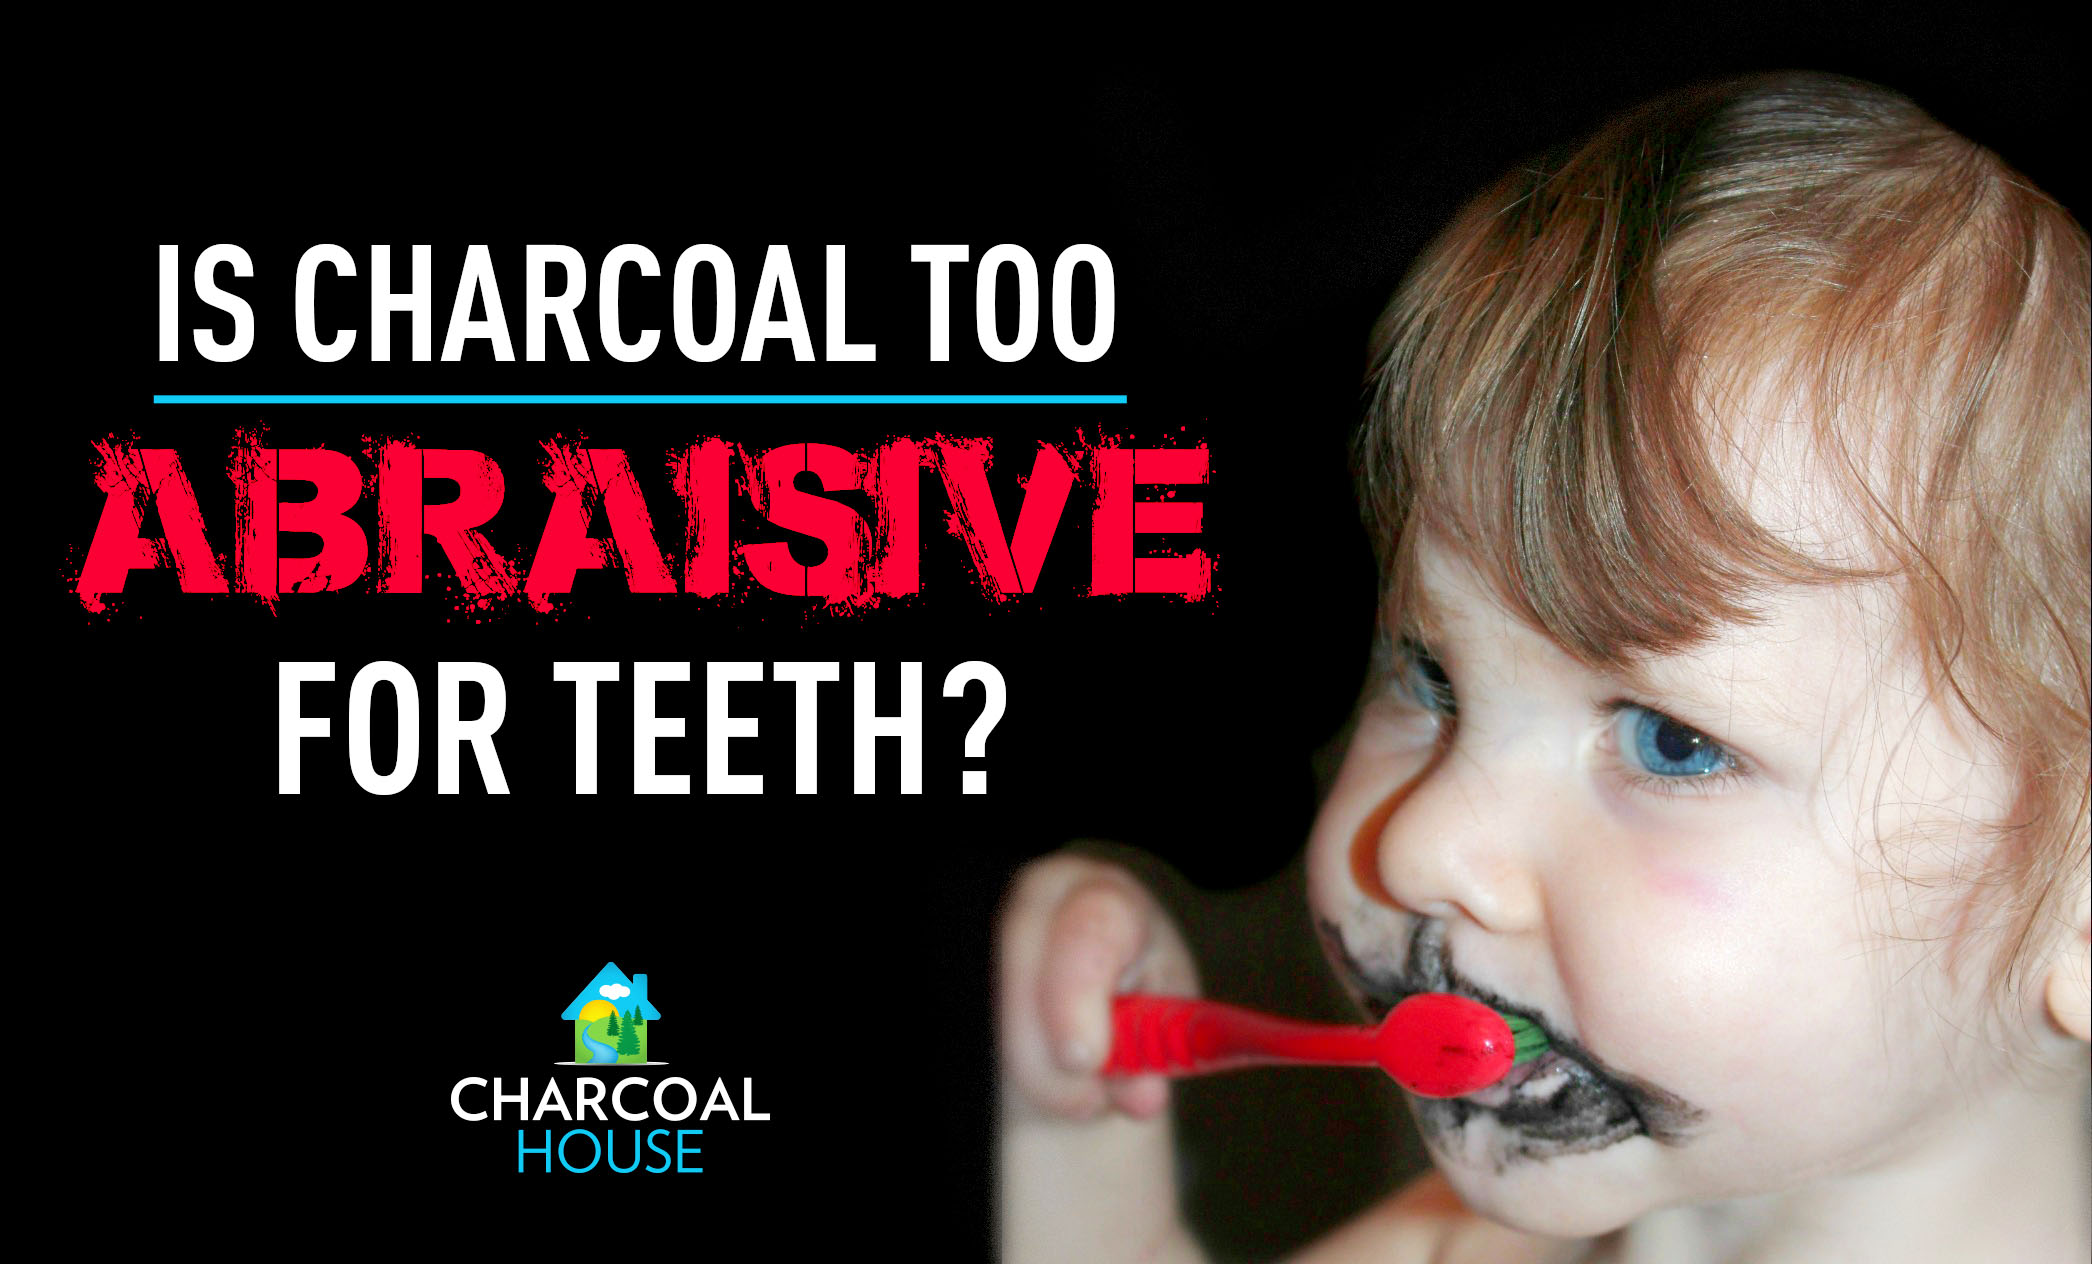 Abraisive for Teeth - Is charcoal is too abrasive to use on teeth?